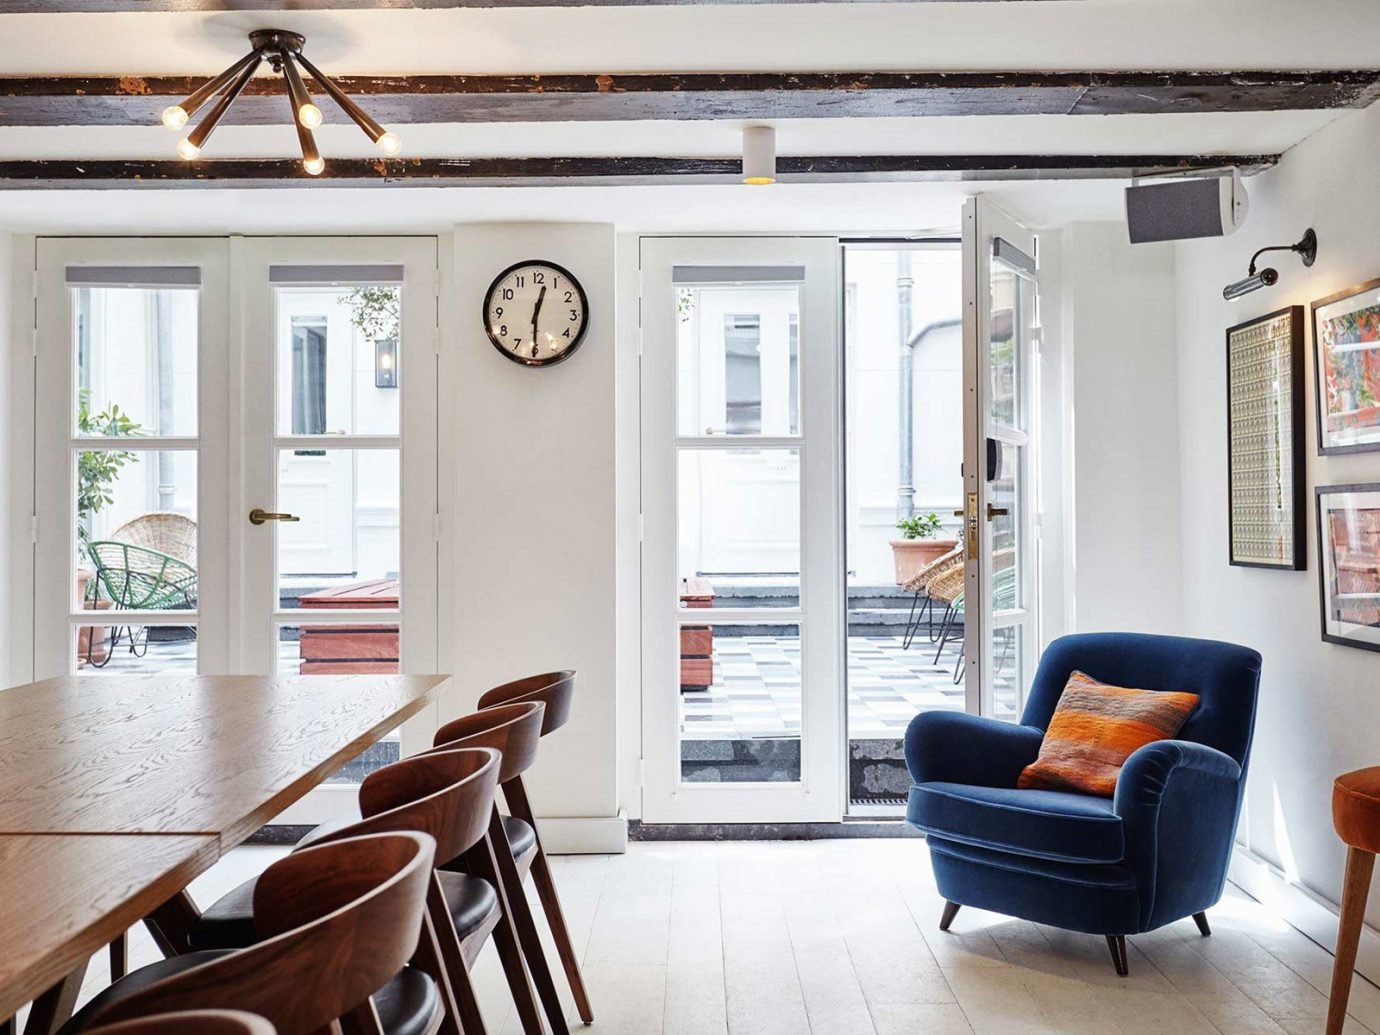 Amsterdam Hotels Style + Design The Netherlands Travel Shop indoor floor wall chair room property Living living room home dining room house estate interior design hardwood real estate cottage furniture window Dining Design window covering farmhouse loft apartment area